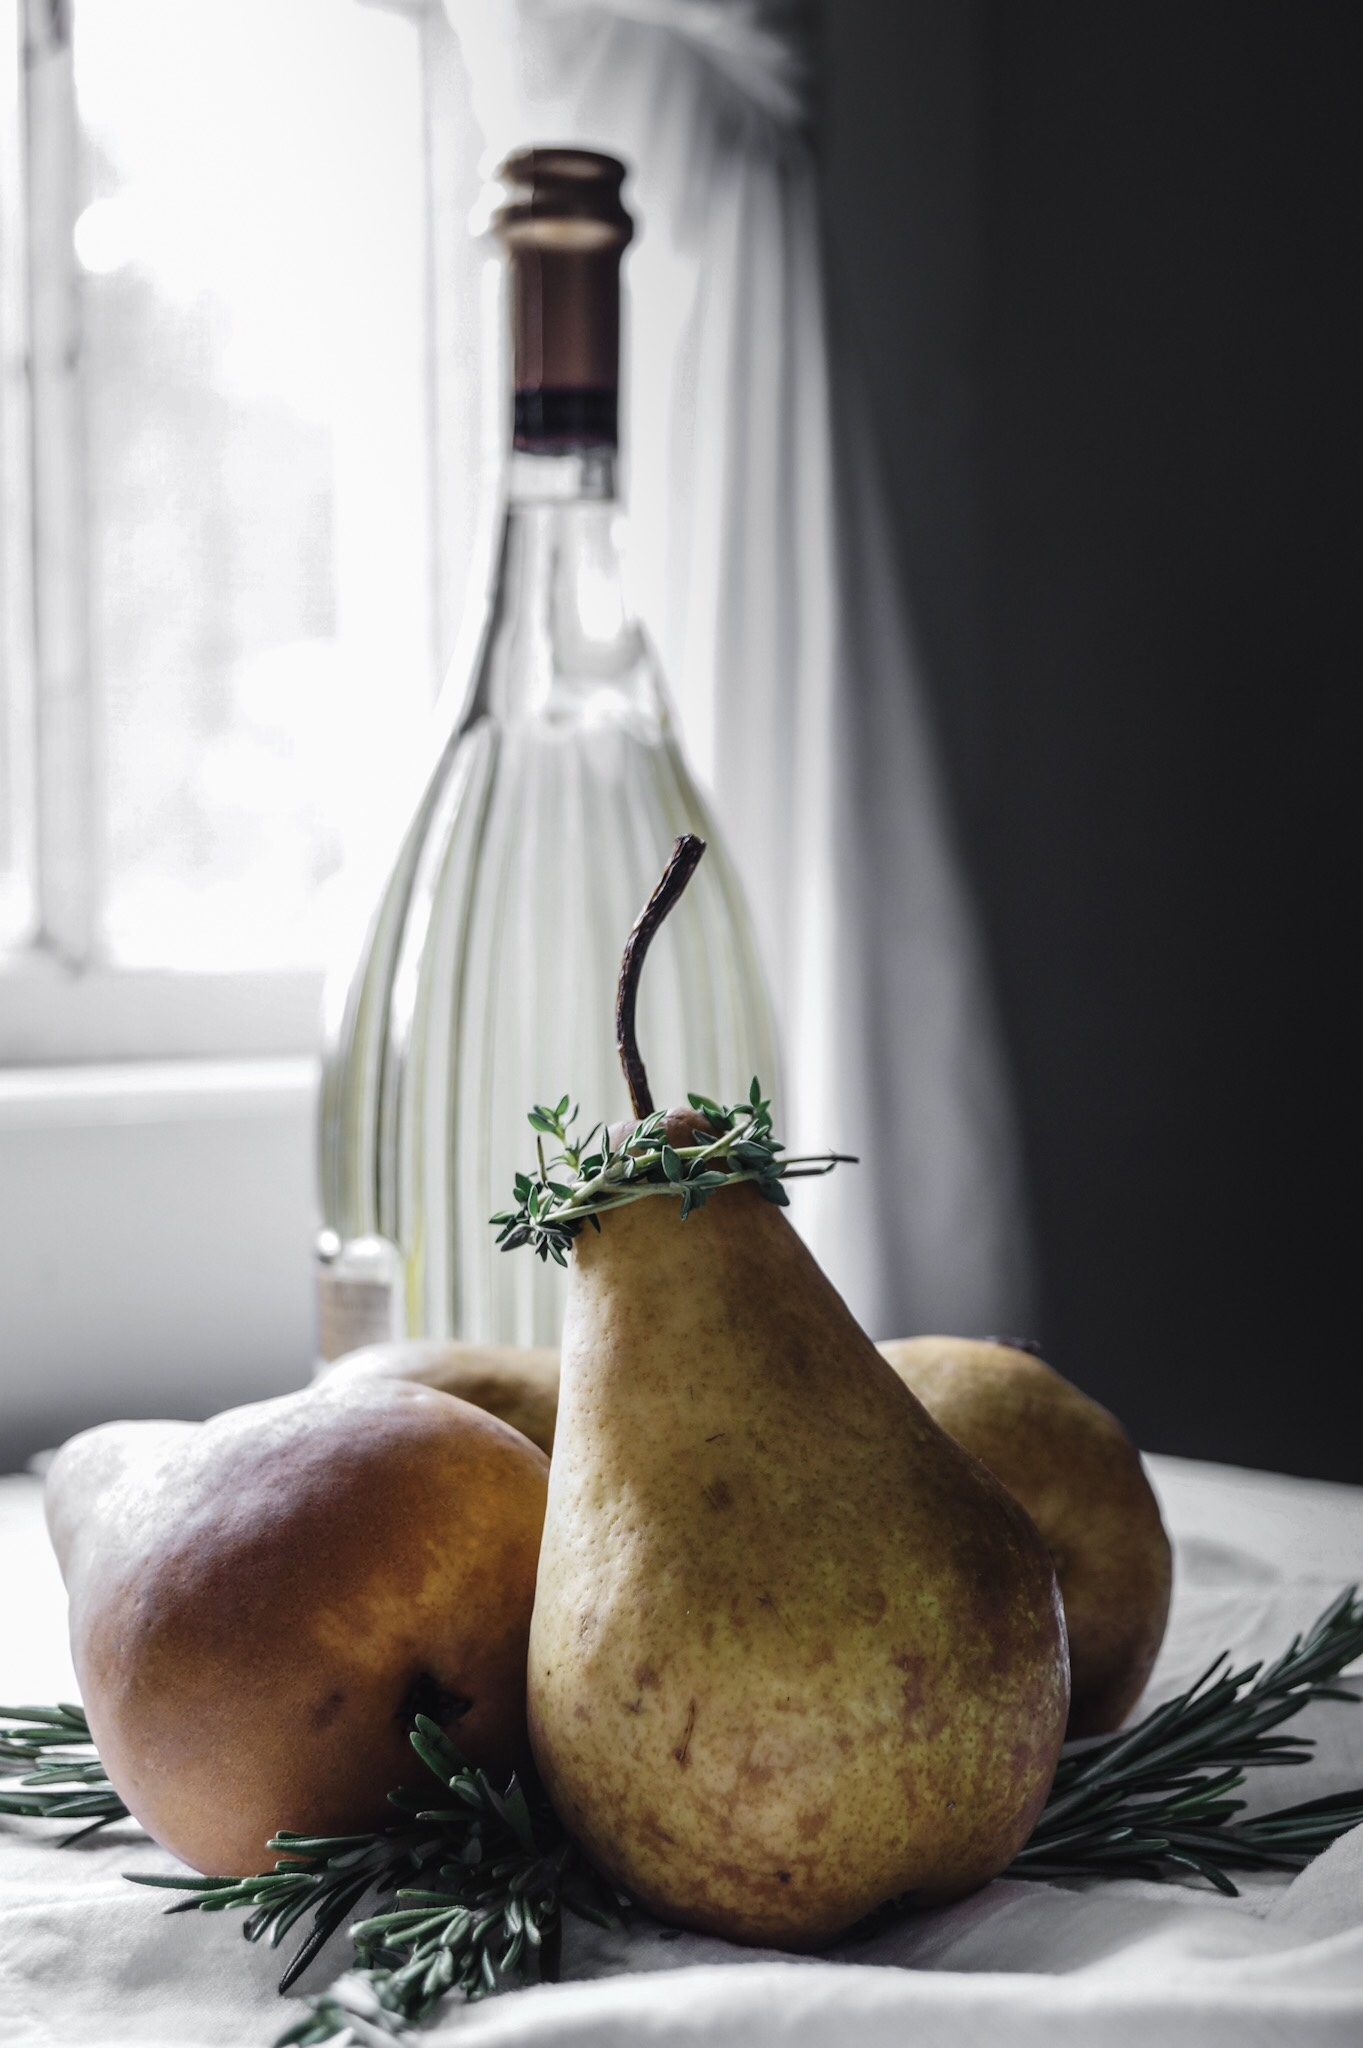 I would write that to her great delight there was a basket of wool socks keeping warm by the fire and on the table sat a simple loaf of freshly baked bread and a French pear 75 to wash it down. #amessybunkitchen french 75 cocktail recipe, #gin #french75